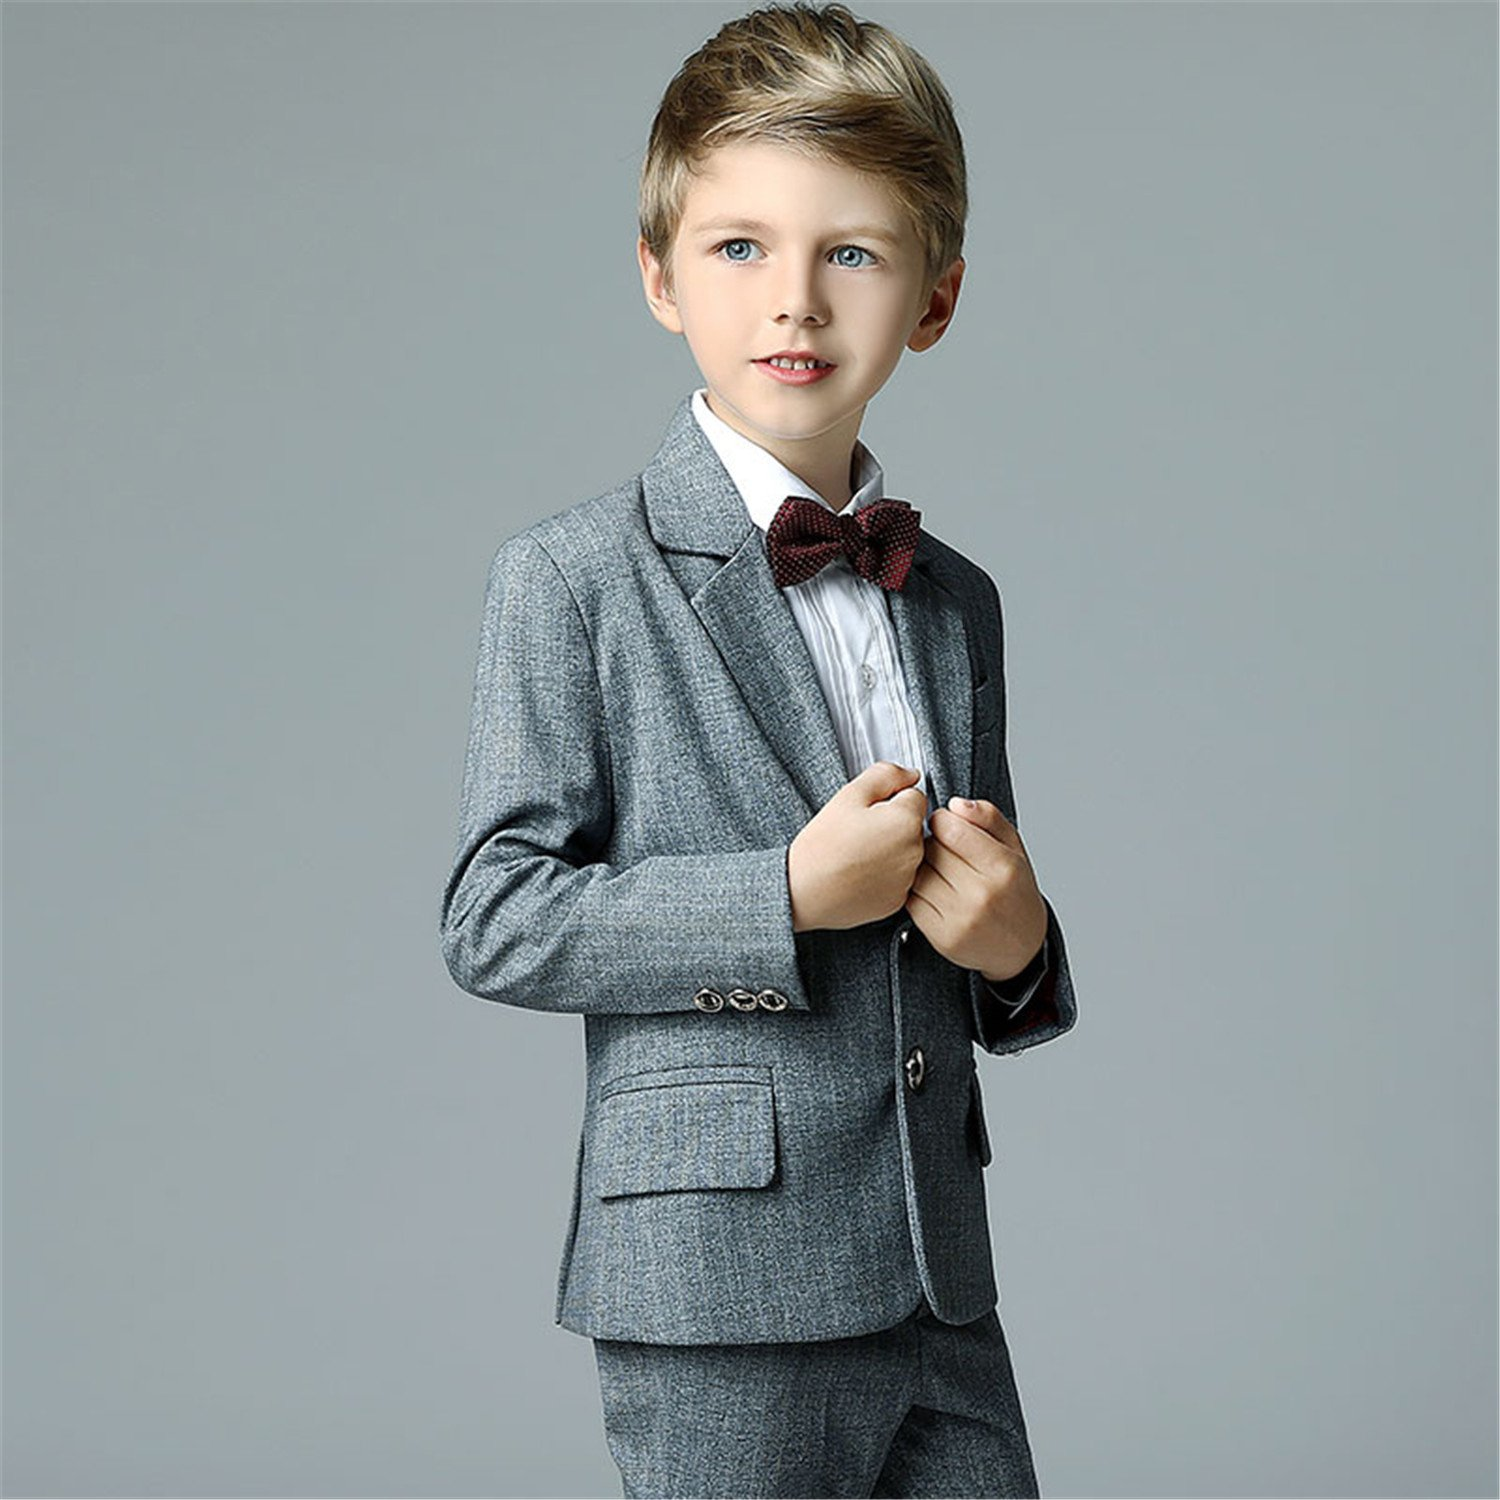 Amazon.com: Yanlu Boys Suit Set For Weddings With Jacket Pants Shirt ...